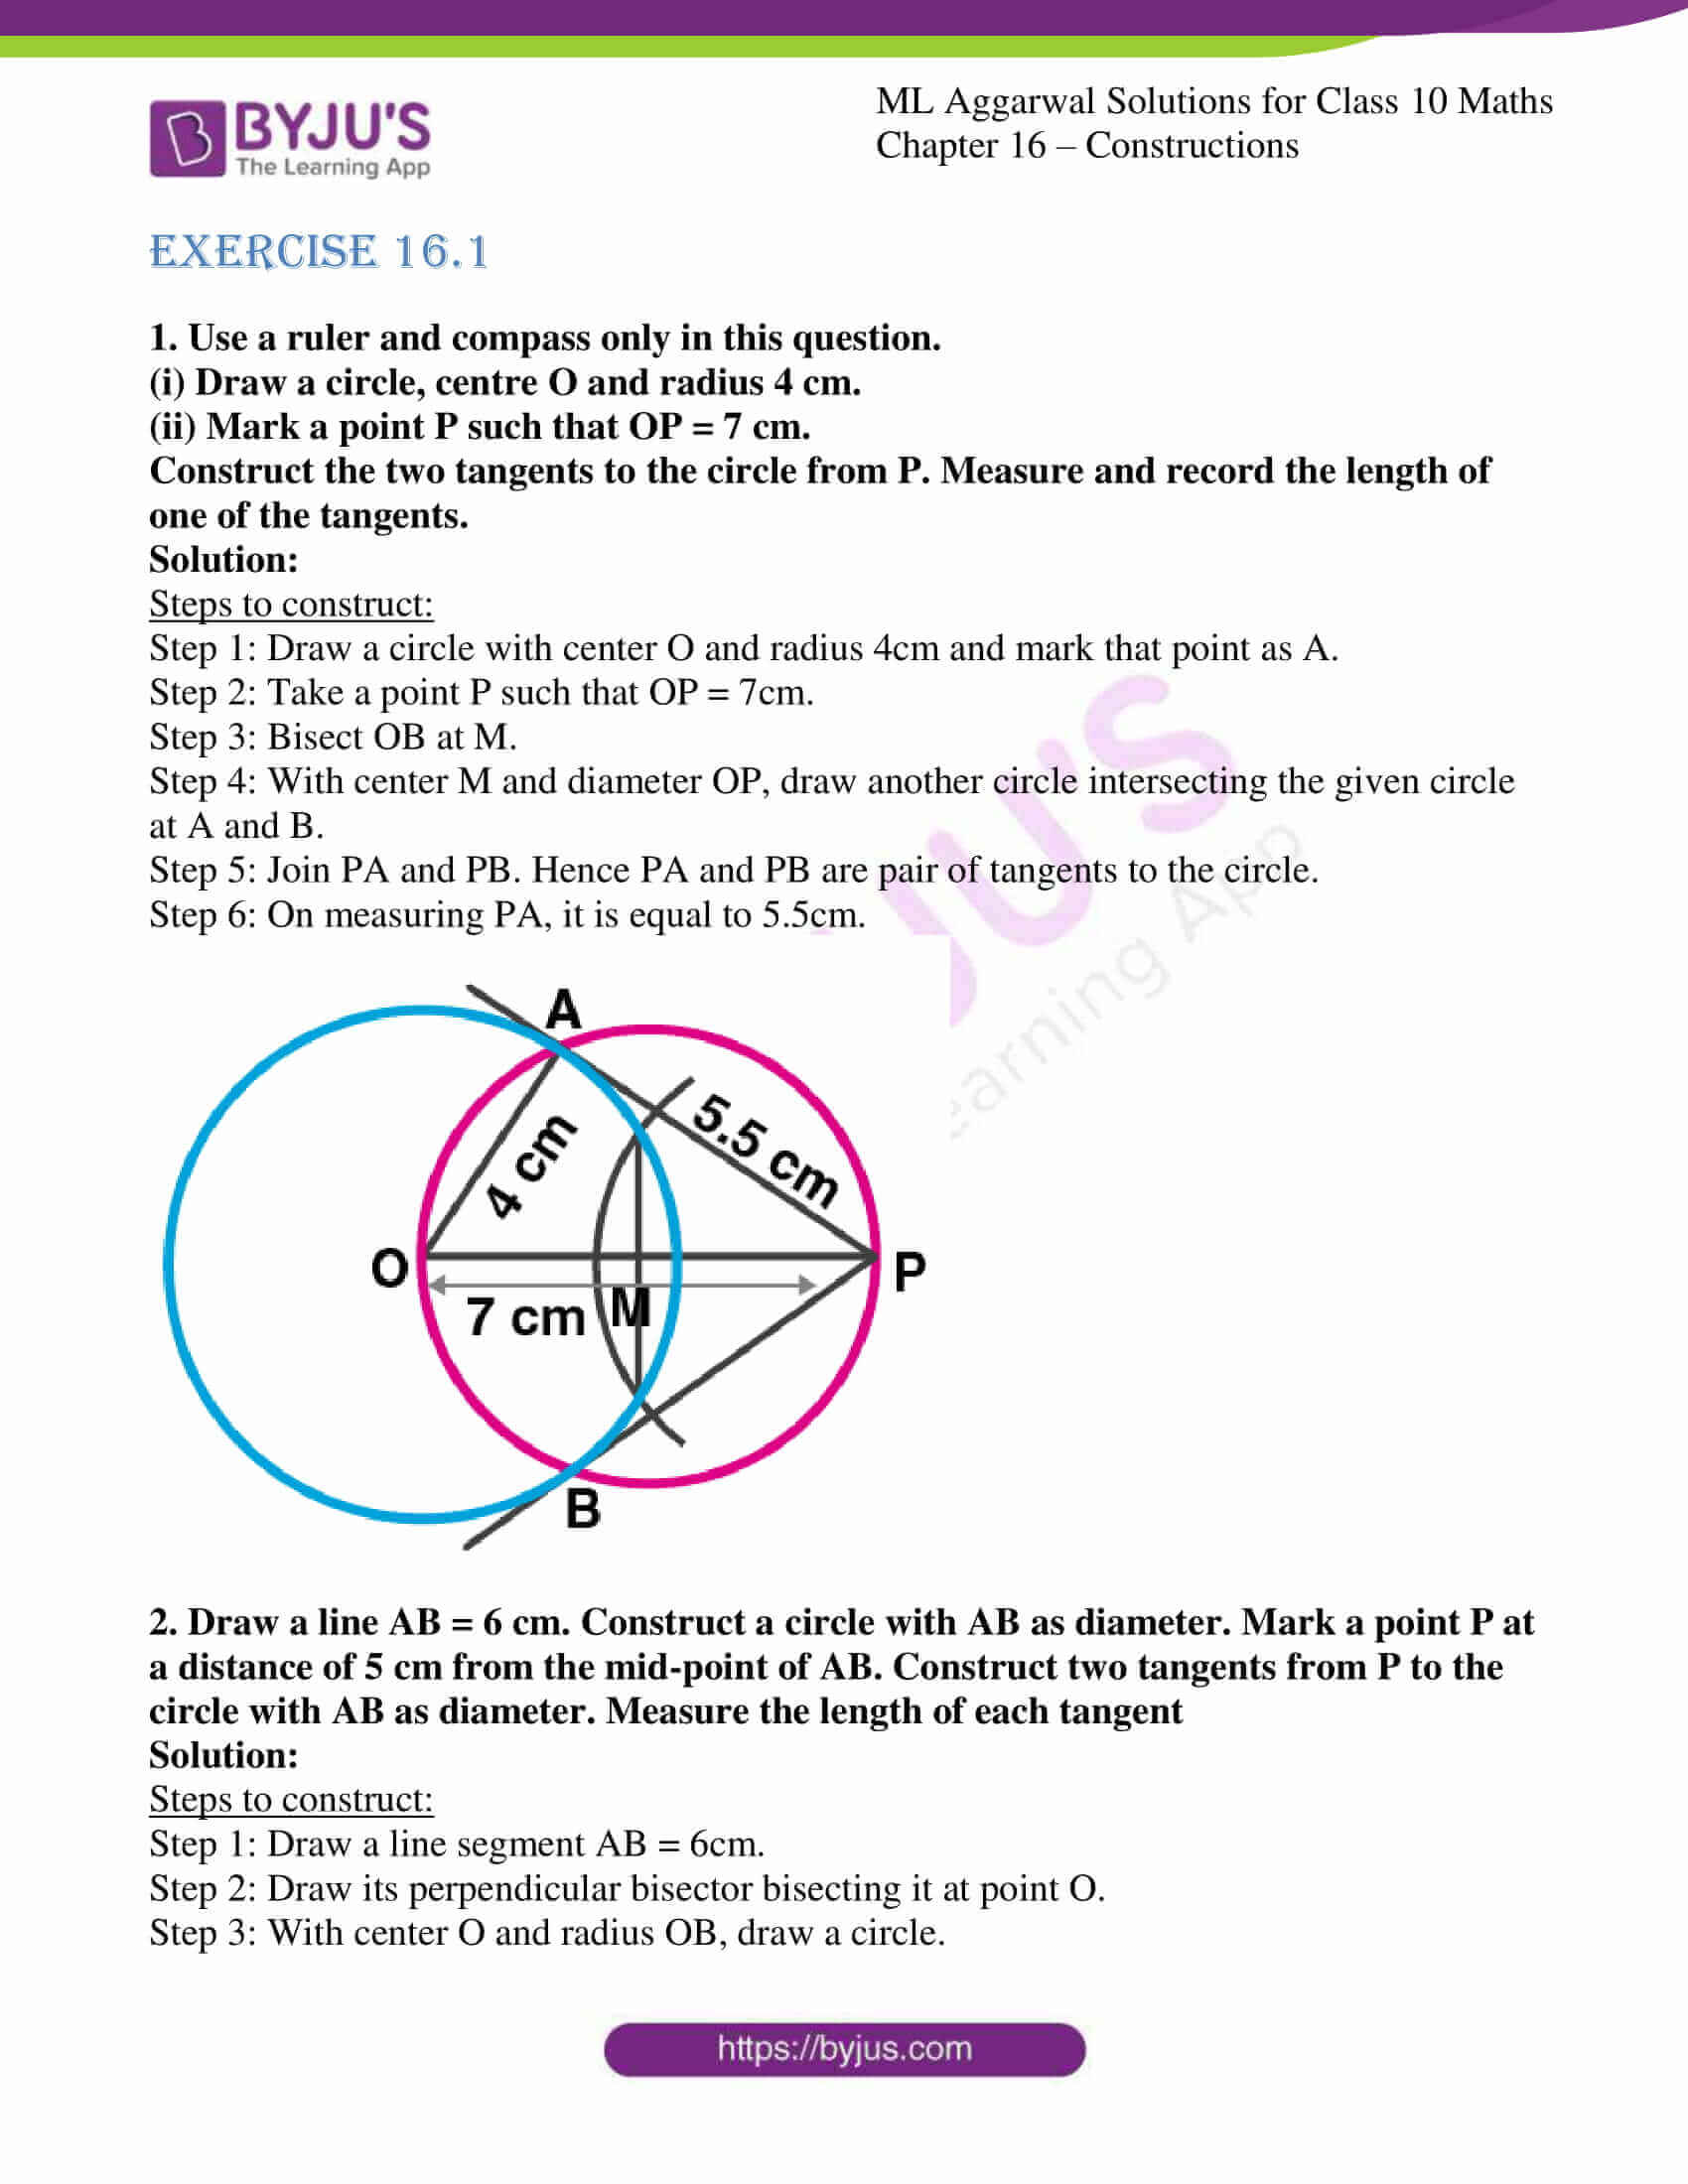 ml aggarwal solutions class 10 maths chapter 16 01